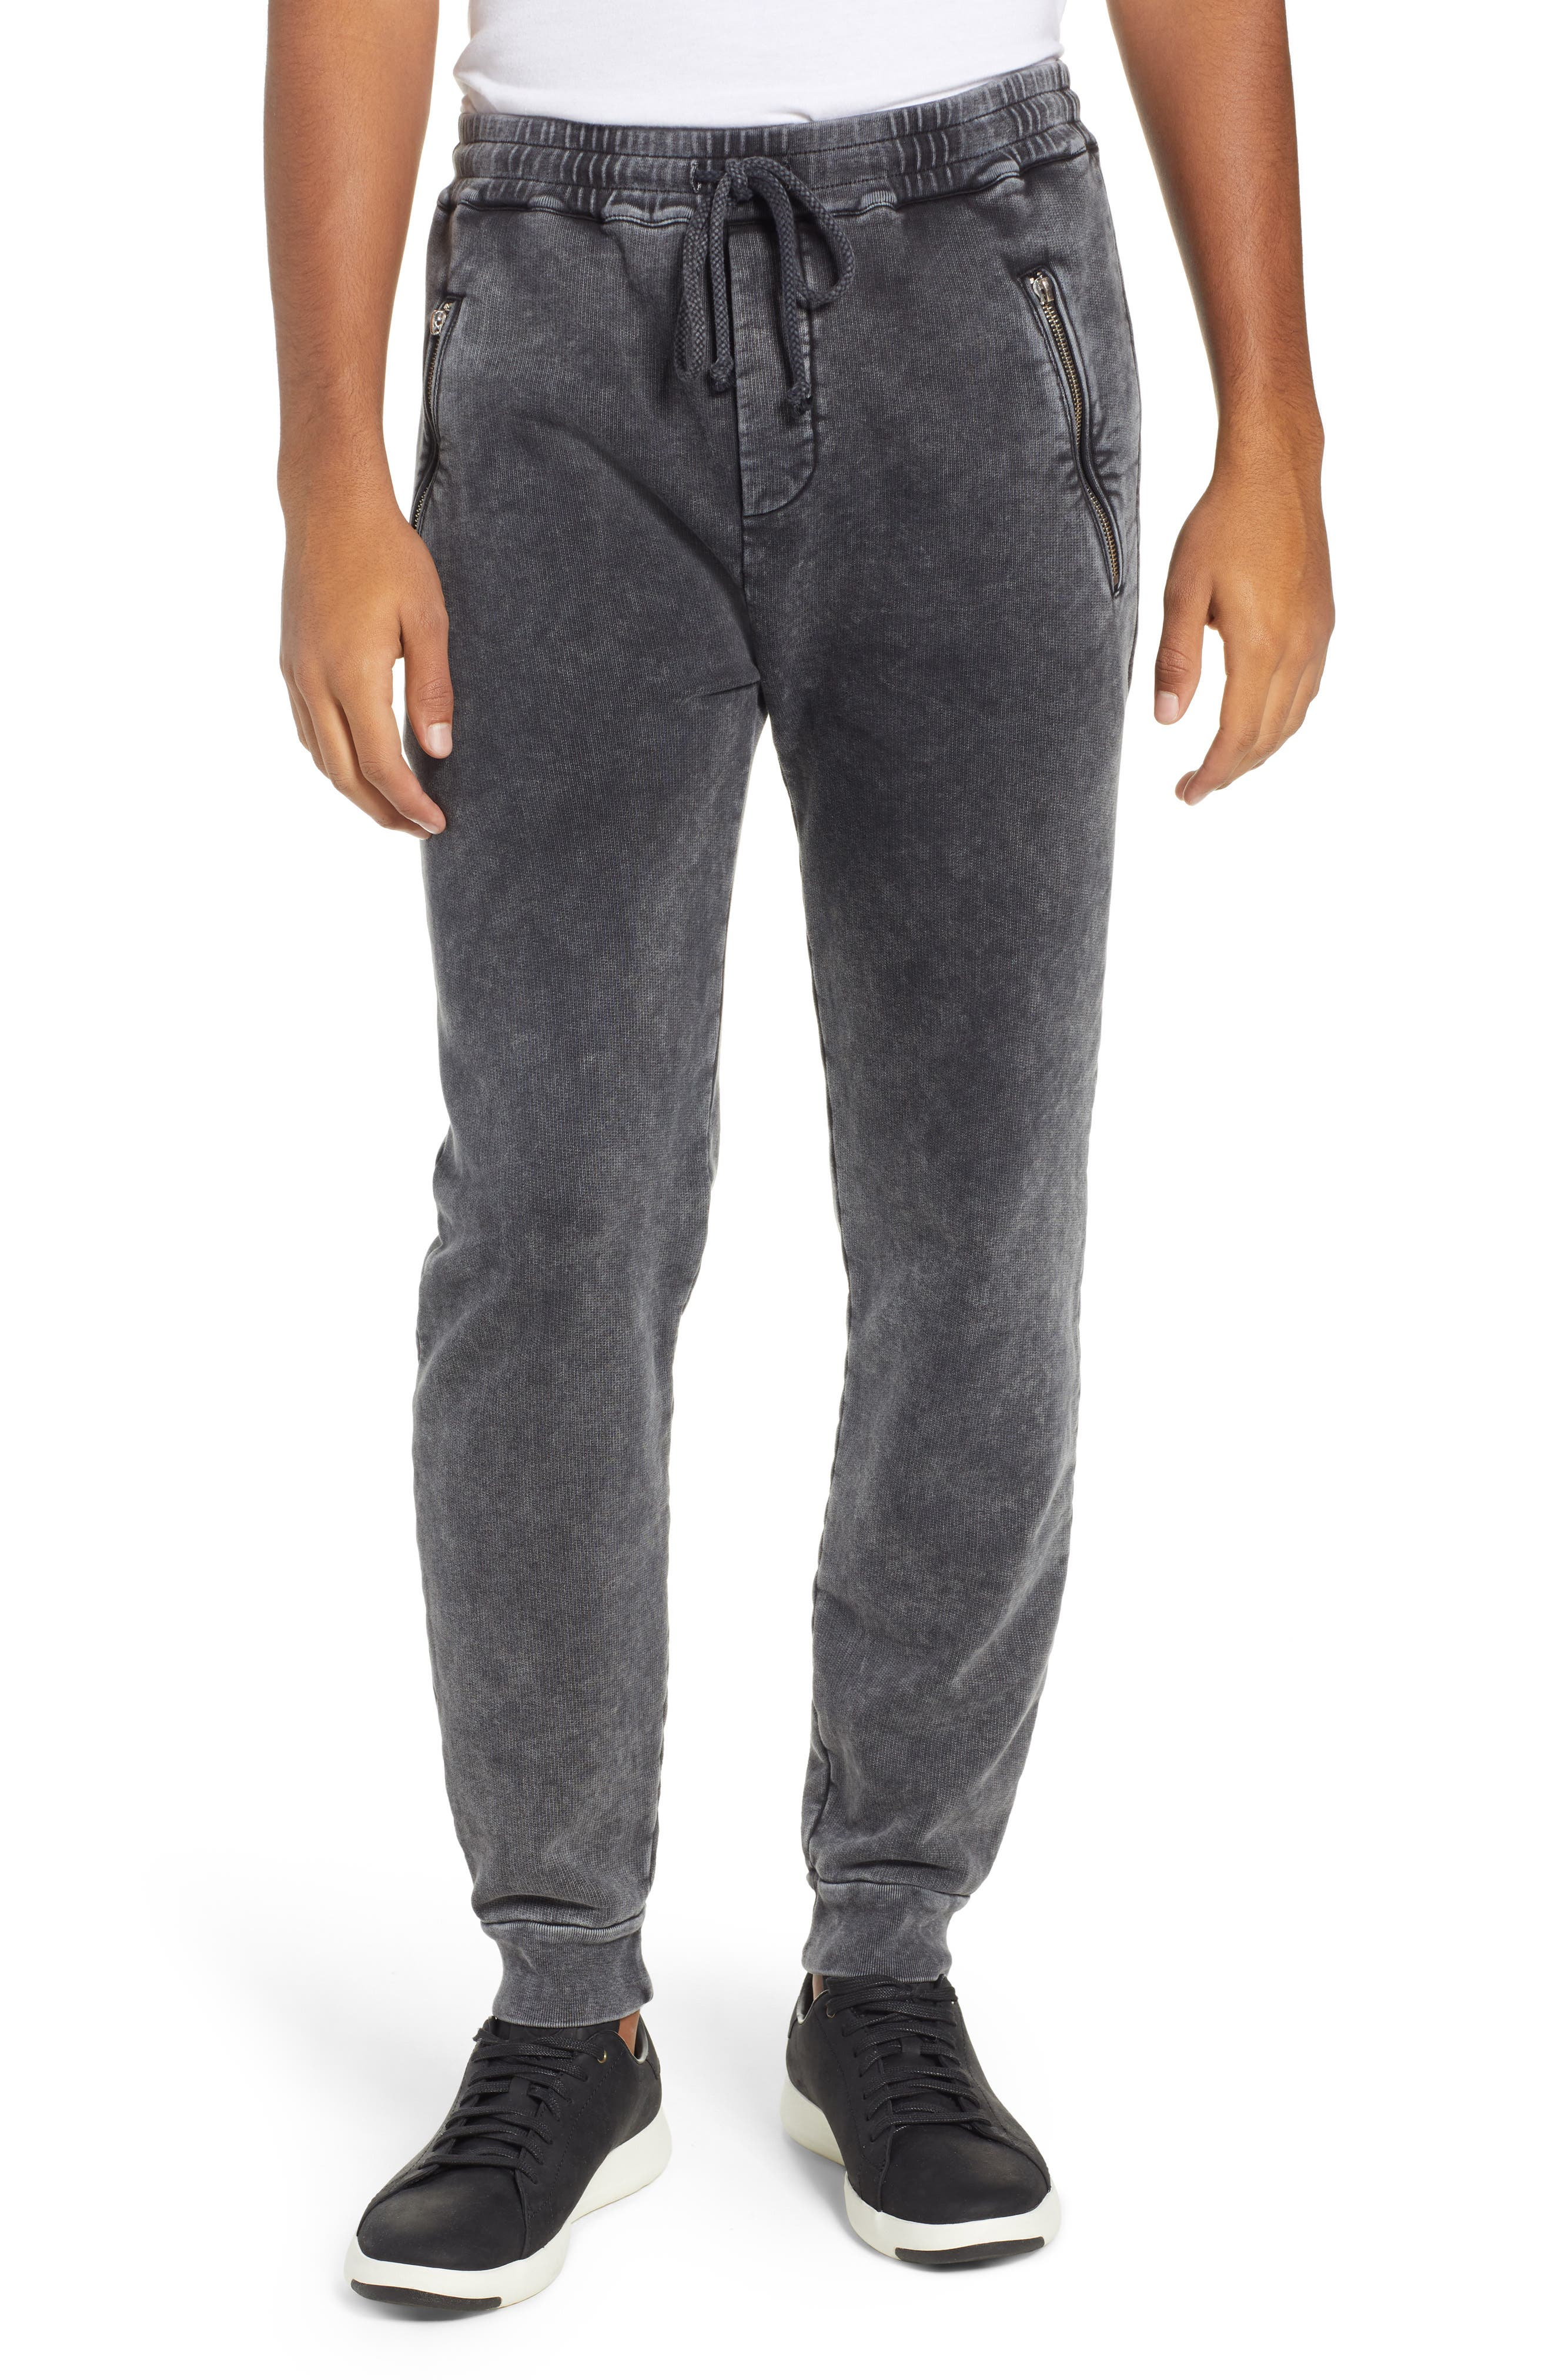 THE KOOPLES, Slim Fit Track Pants, Main thumbnail 1, color, BLACK WASHED